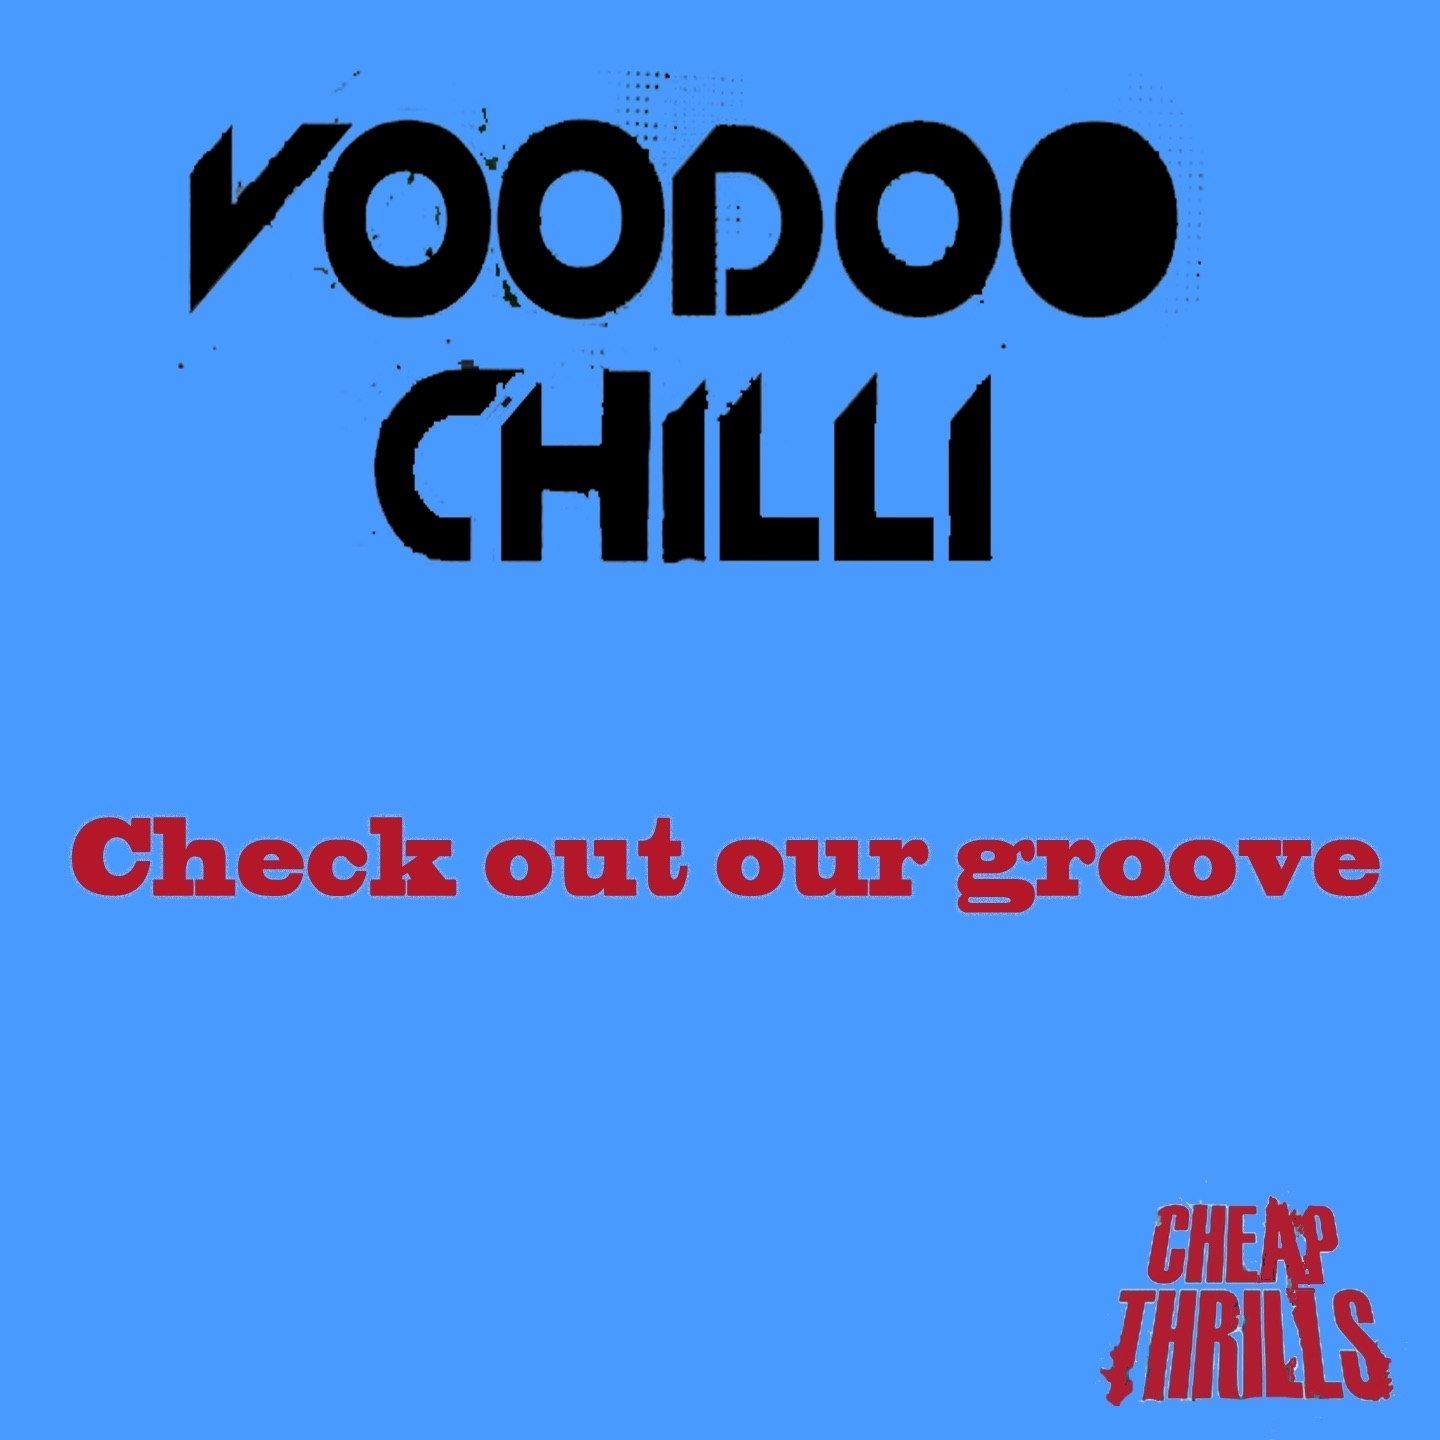 Check Out Our Groove (feat. Trevor Loveys) - Single